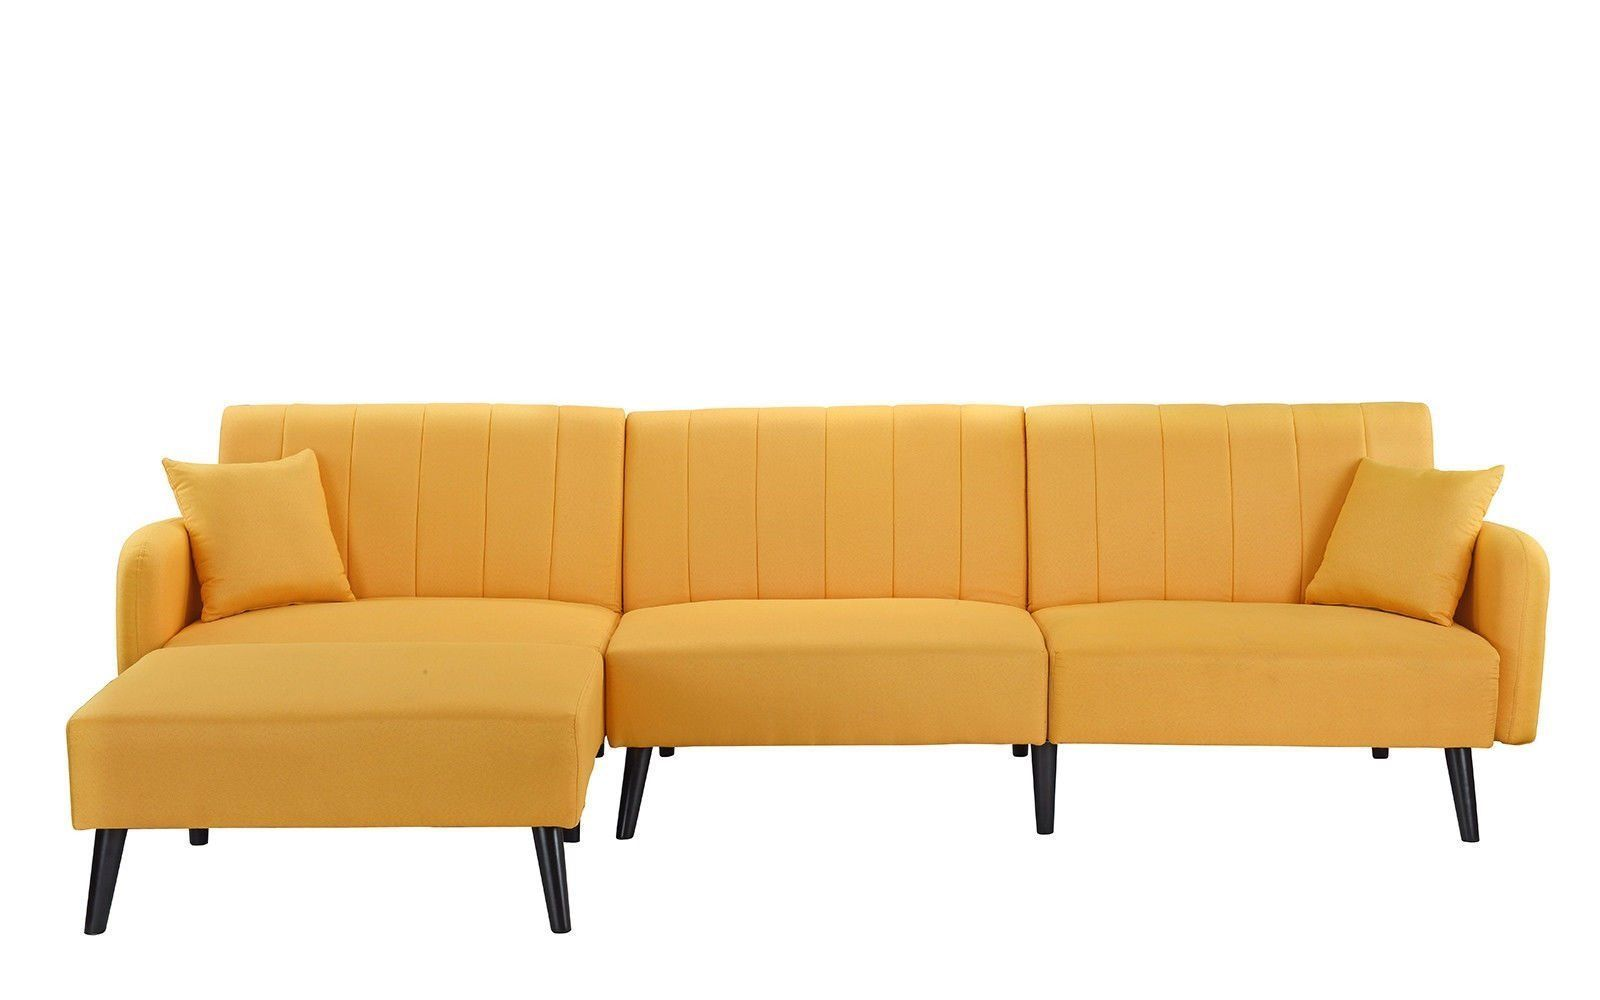 Futon Nice Nice Item Specifics Condition Bossfurniture Store Futon